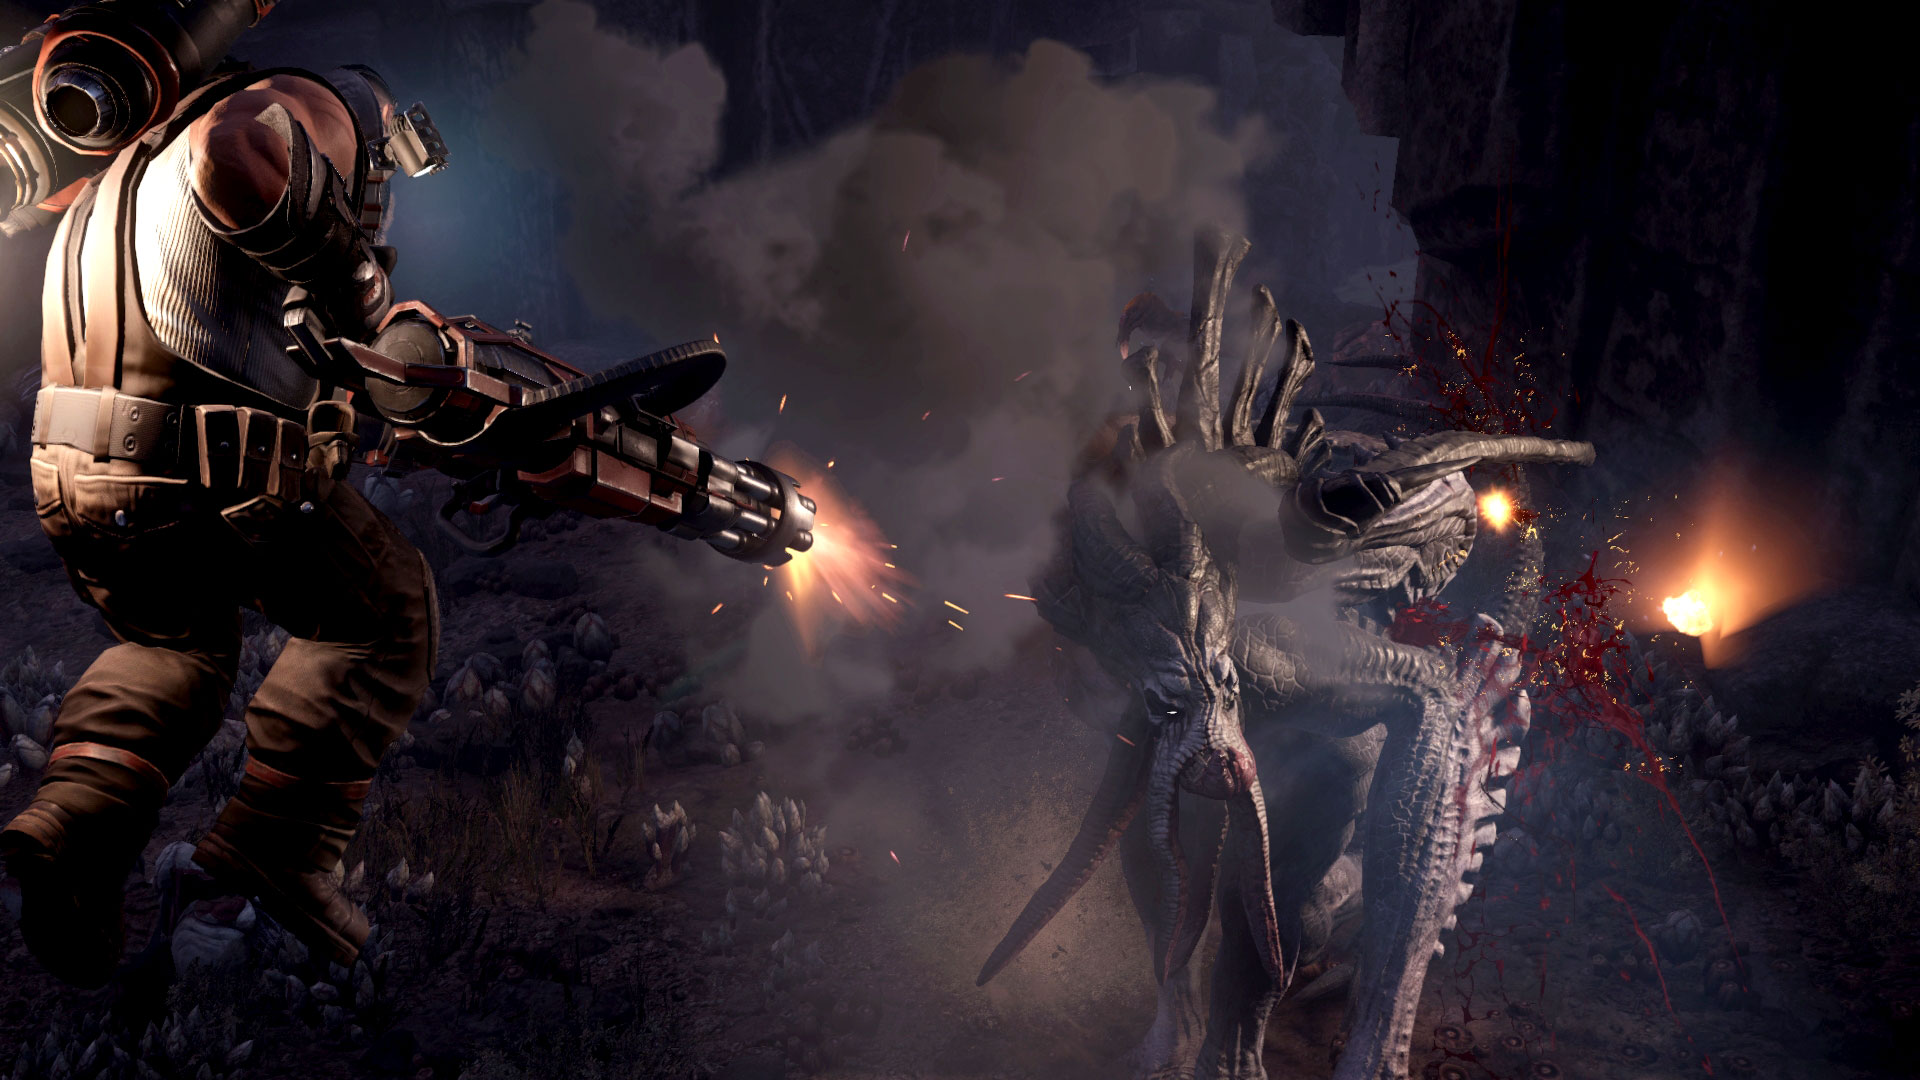 Evolve nos muestra su modo solitario offline. [VIDEO]